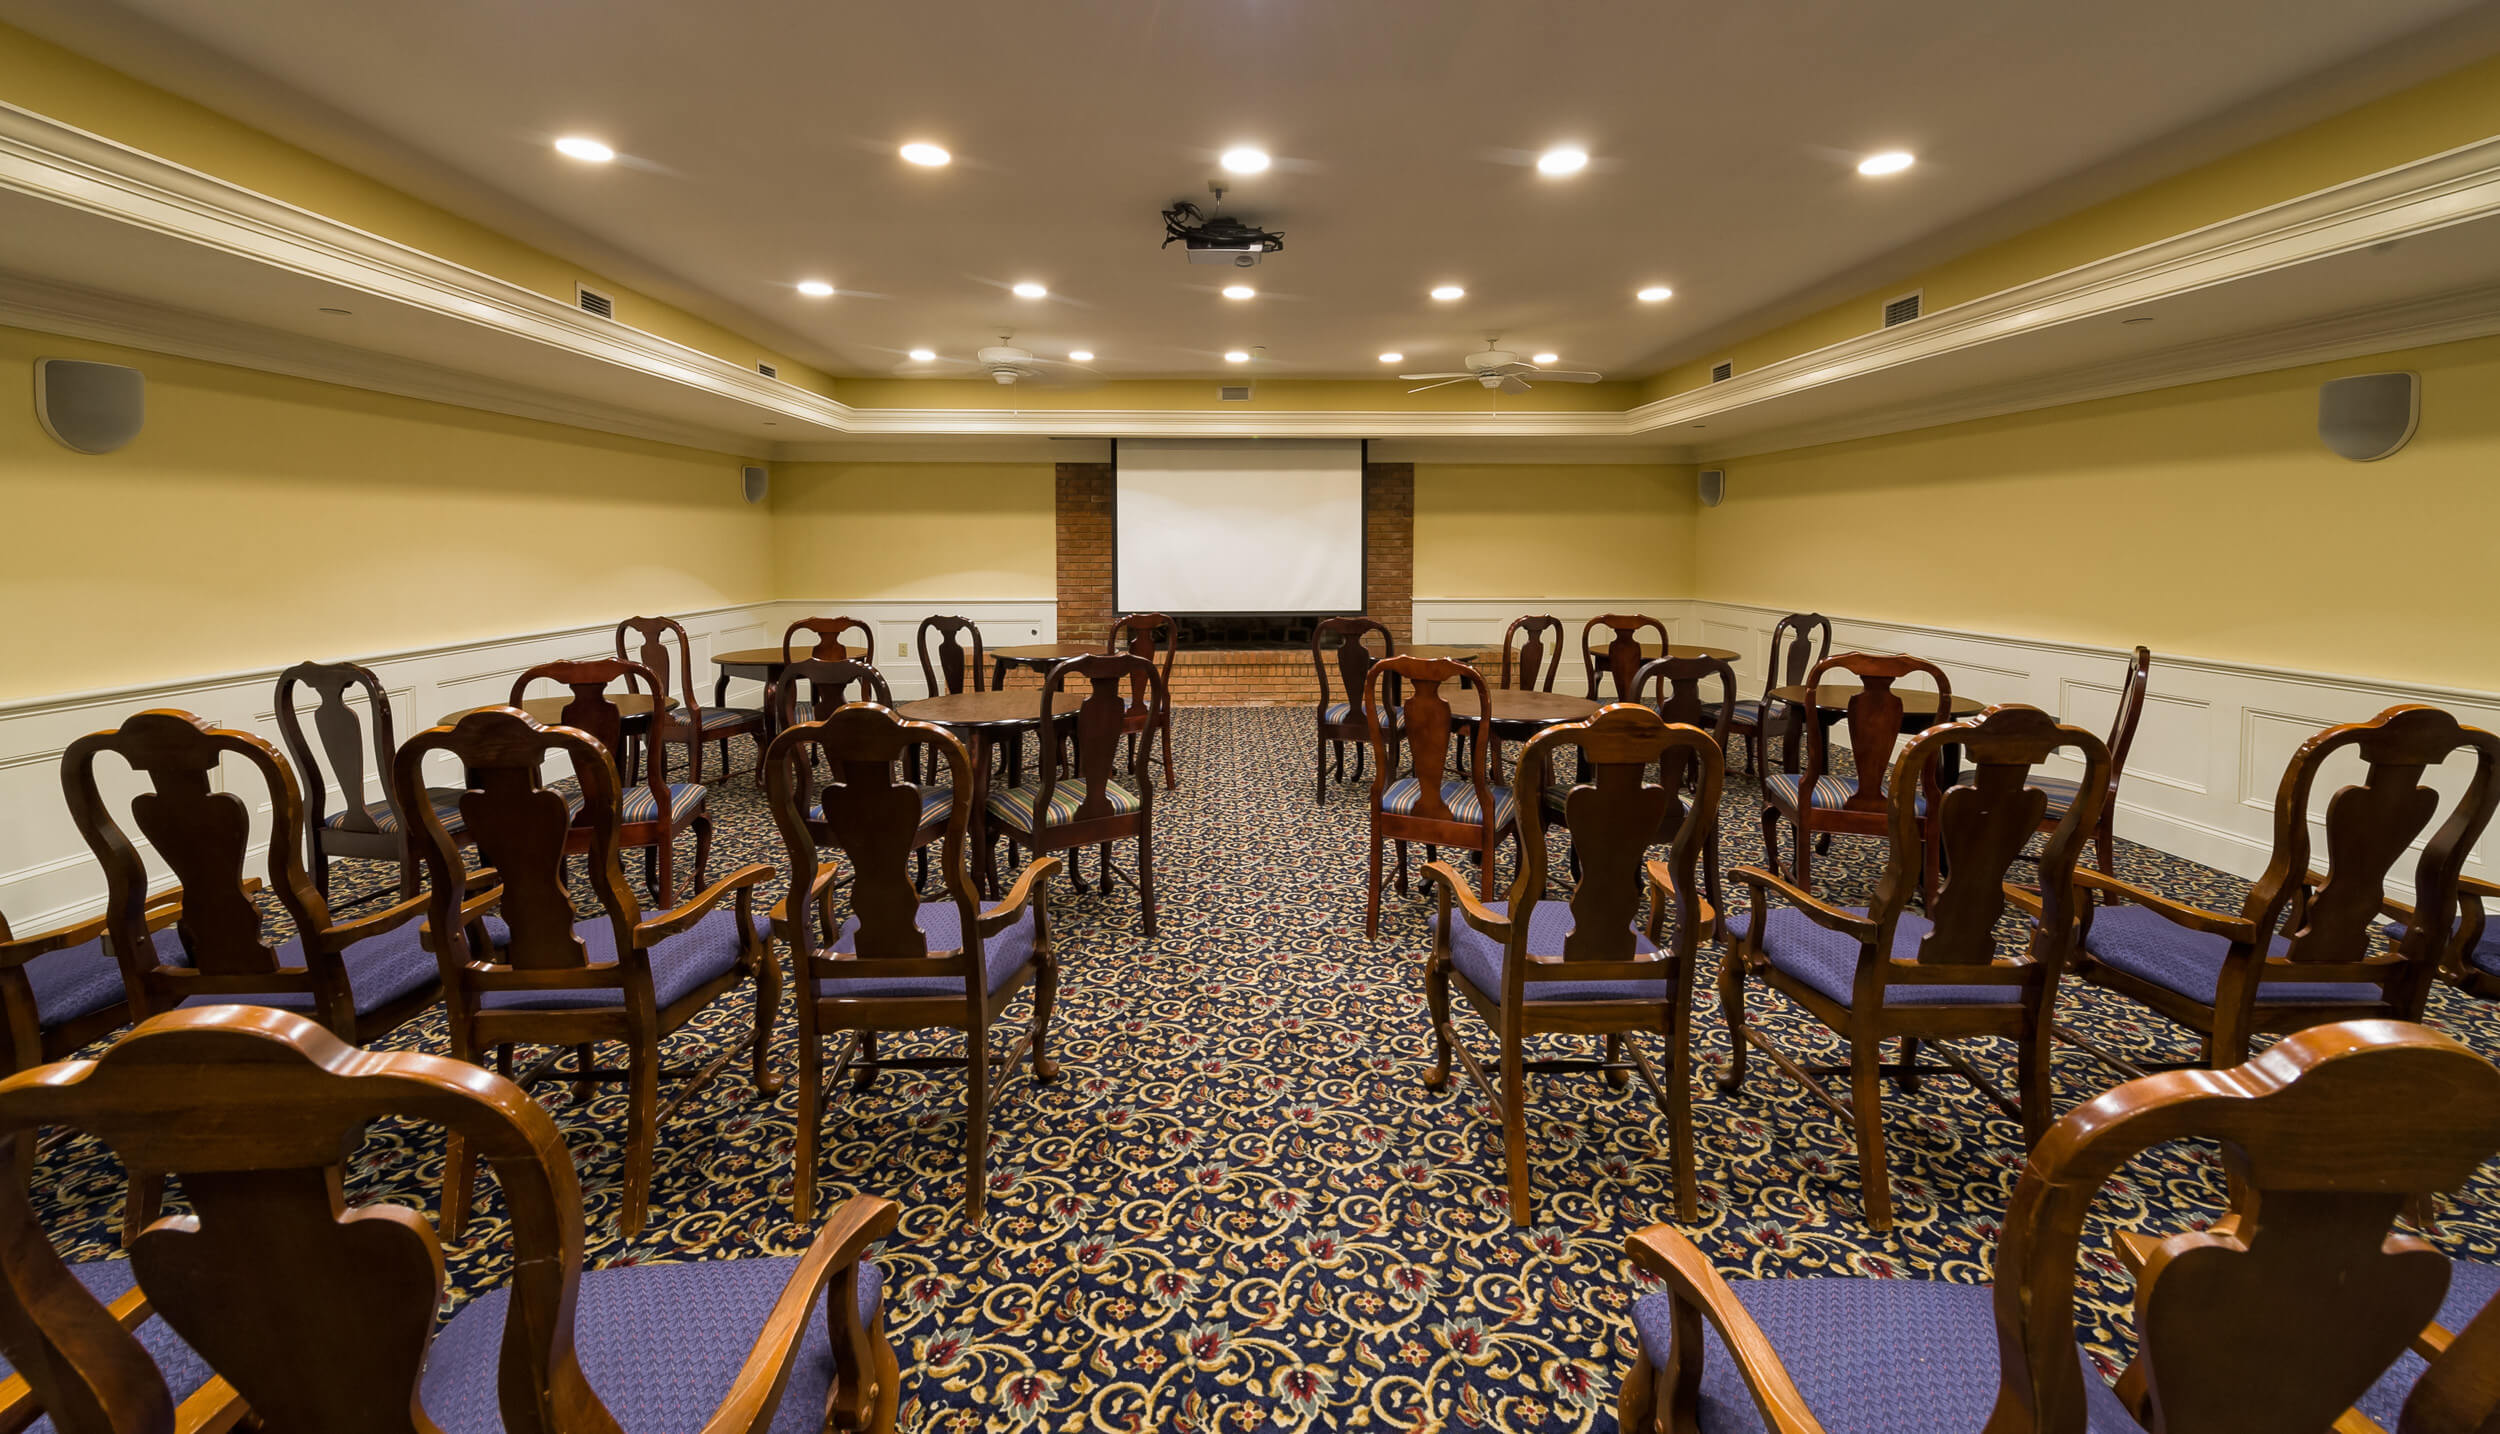 Meeting room with rows of chairs and projection screen | Westgate Historic Williamsburg Resort